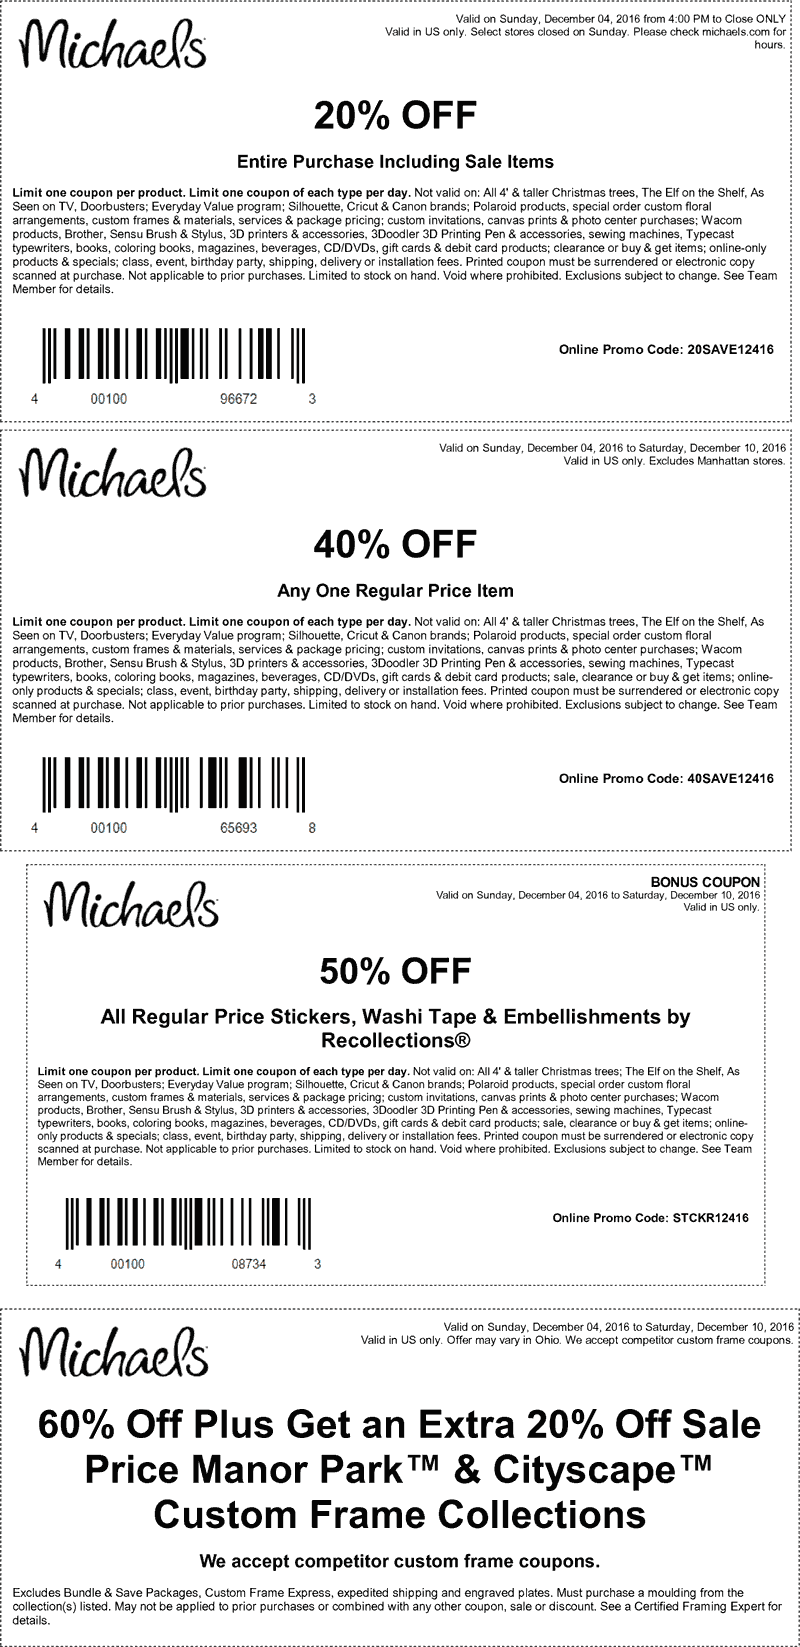 Michaels.com Promo Coupon 20% off the tab & more at Michaels, or online via promo code 20SAVE12416